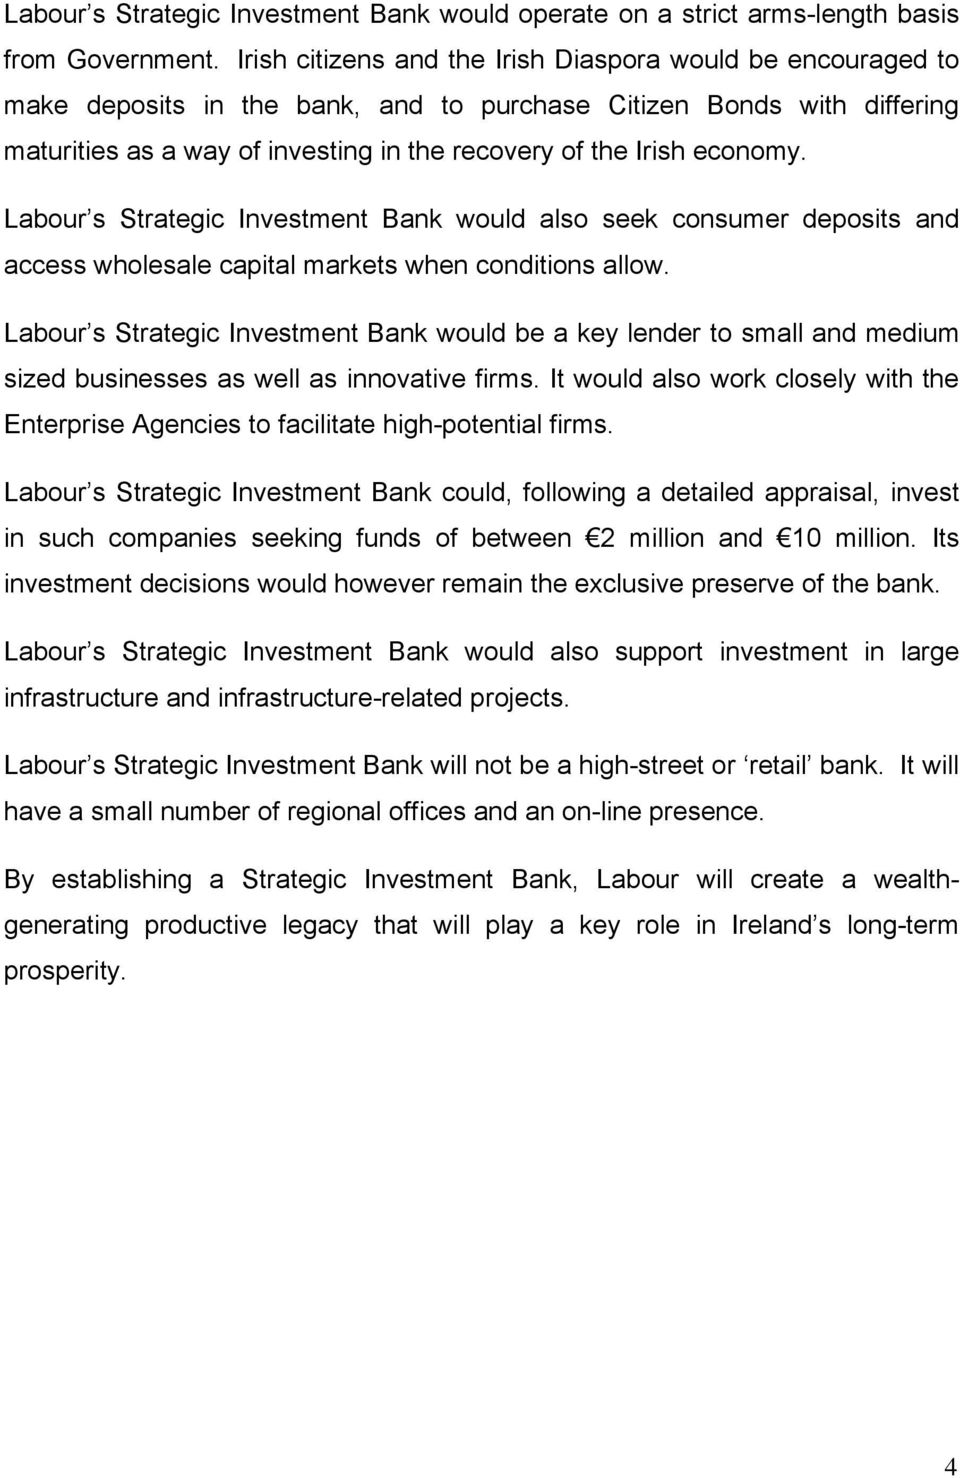 economy. Labour s Strategic Investment Bank would also seek consumer deposits and access wholesale capital markets when conditions allow.